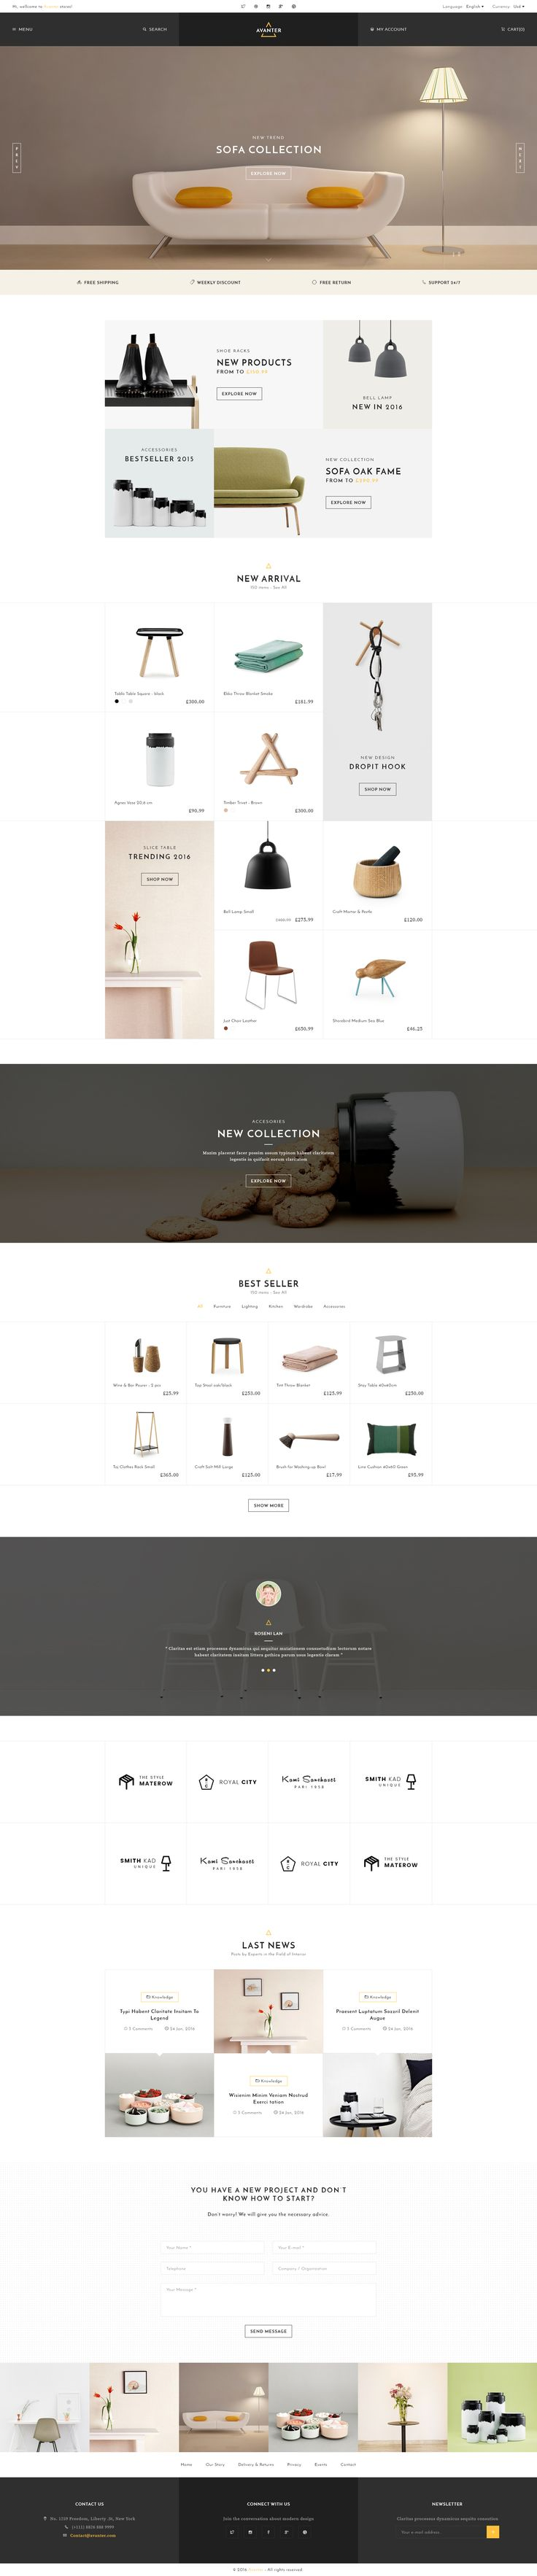 best 25 funiture stores ideas on pinterest small games room avanter funiture store psd template